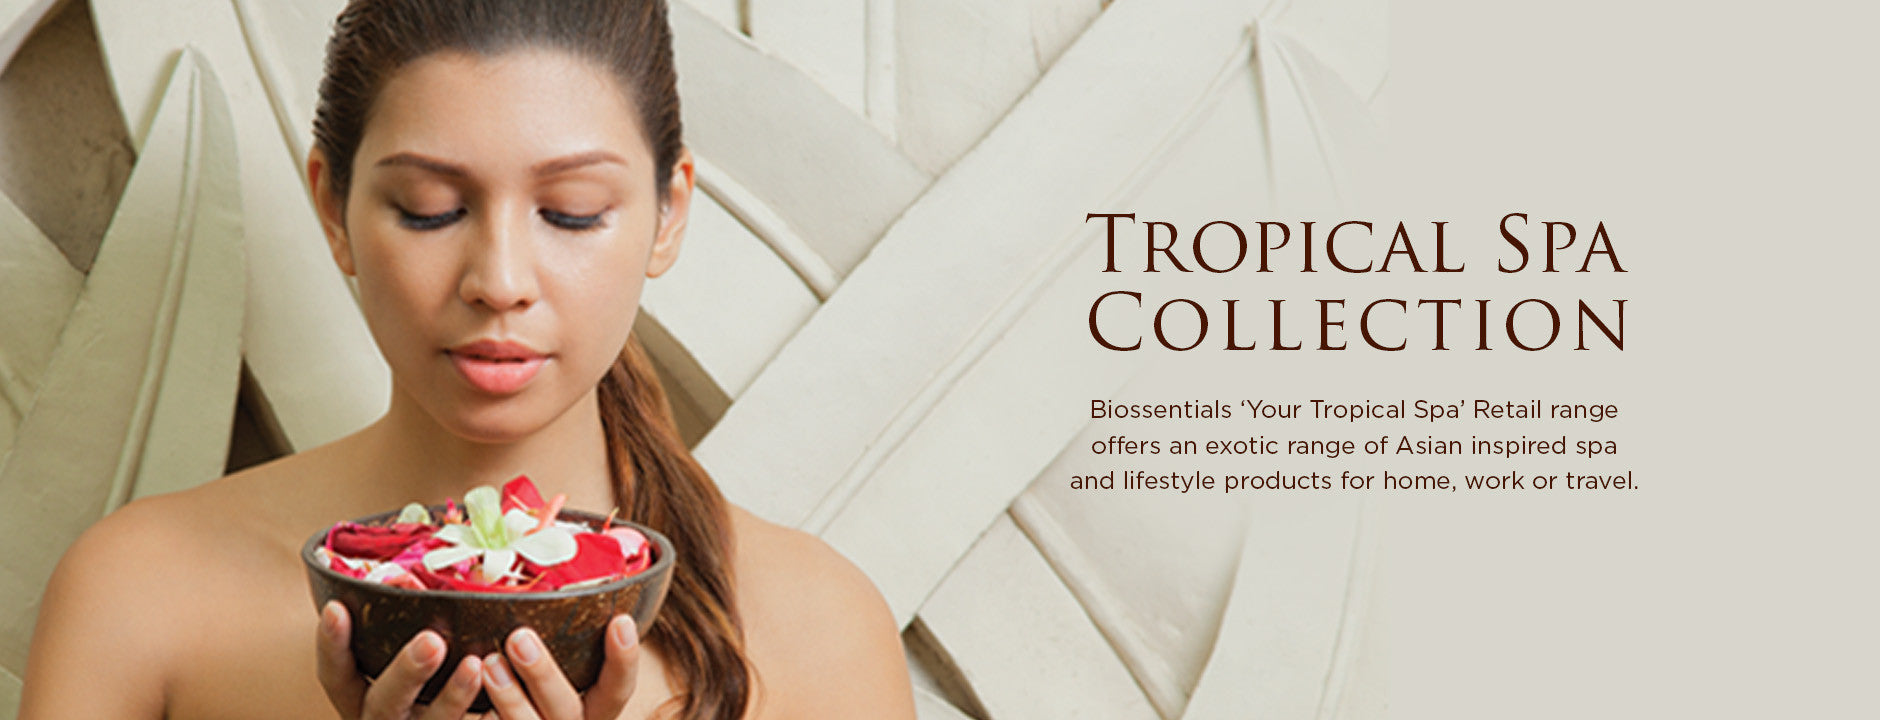 Biossentials Tropical Spa Collection